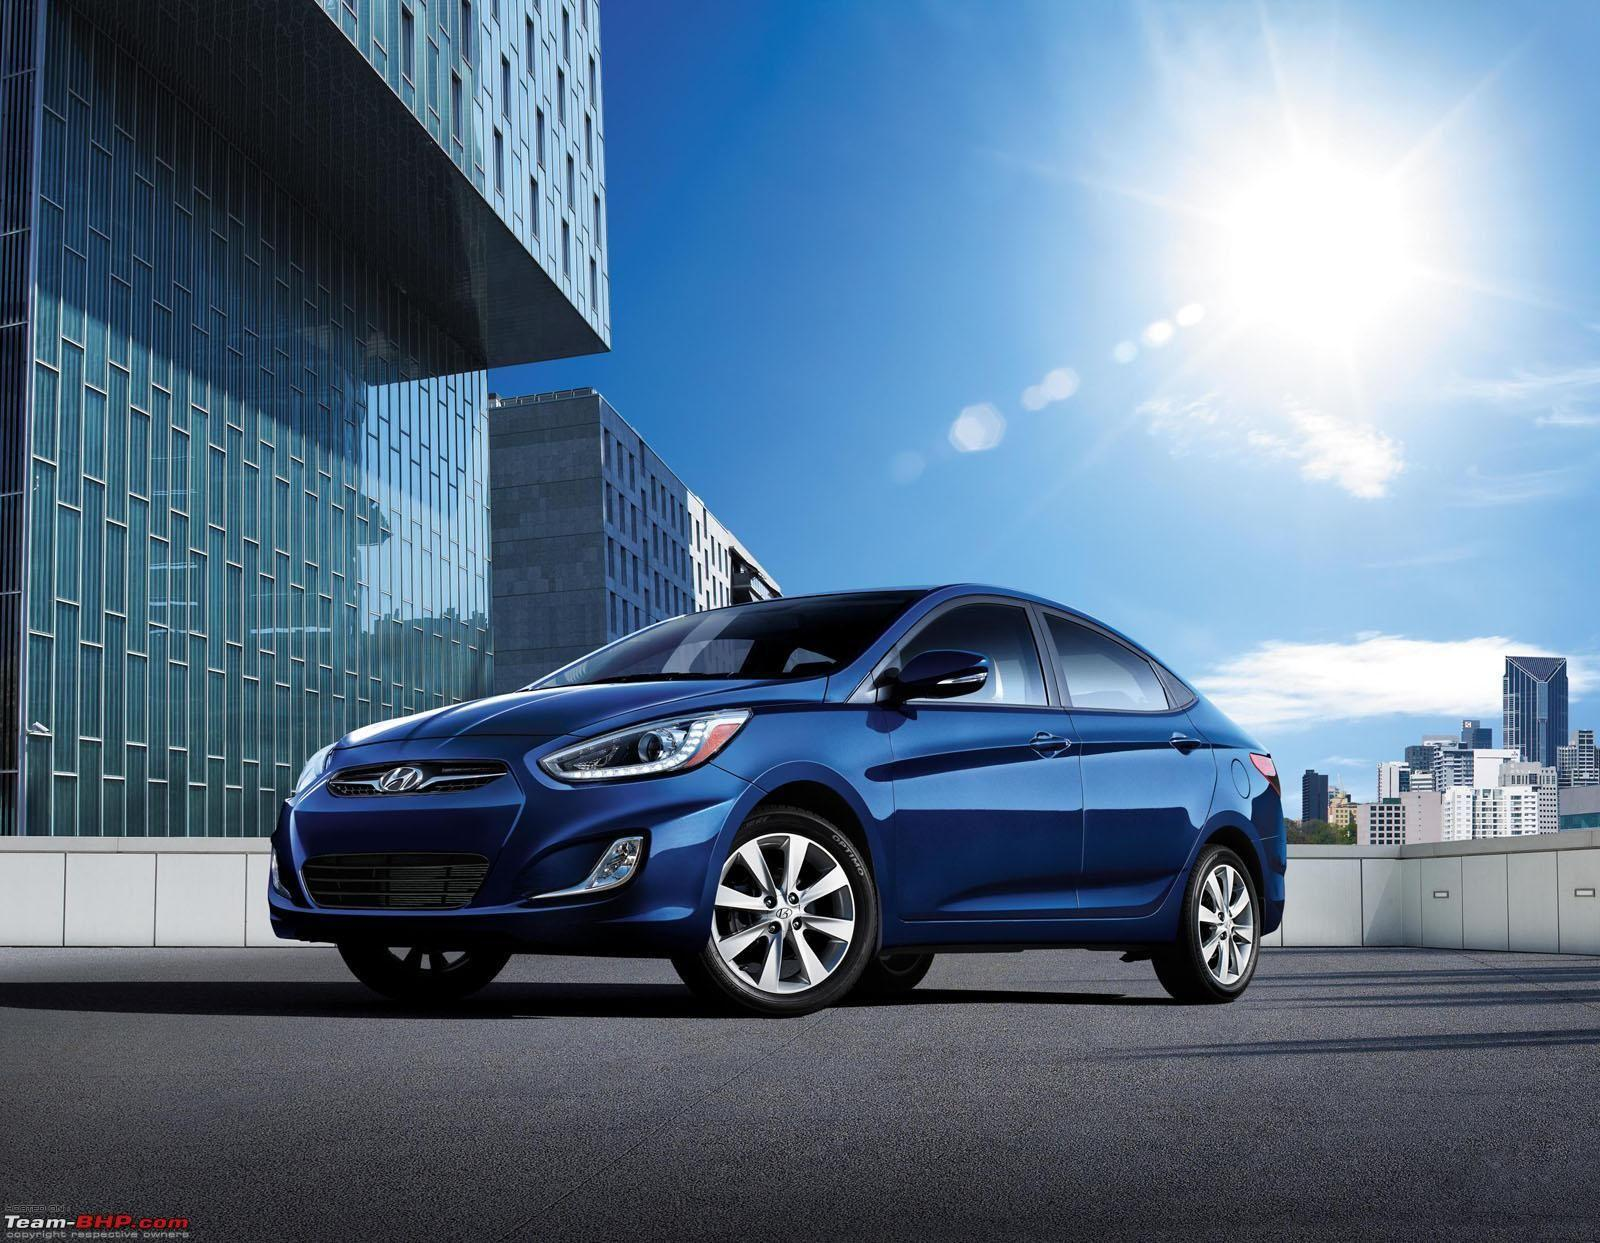 2013 Hyundai Verna Fluidic gets minor updates. And some omissions